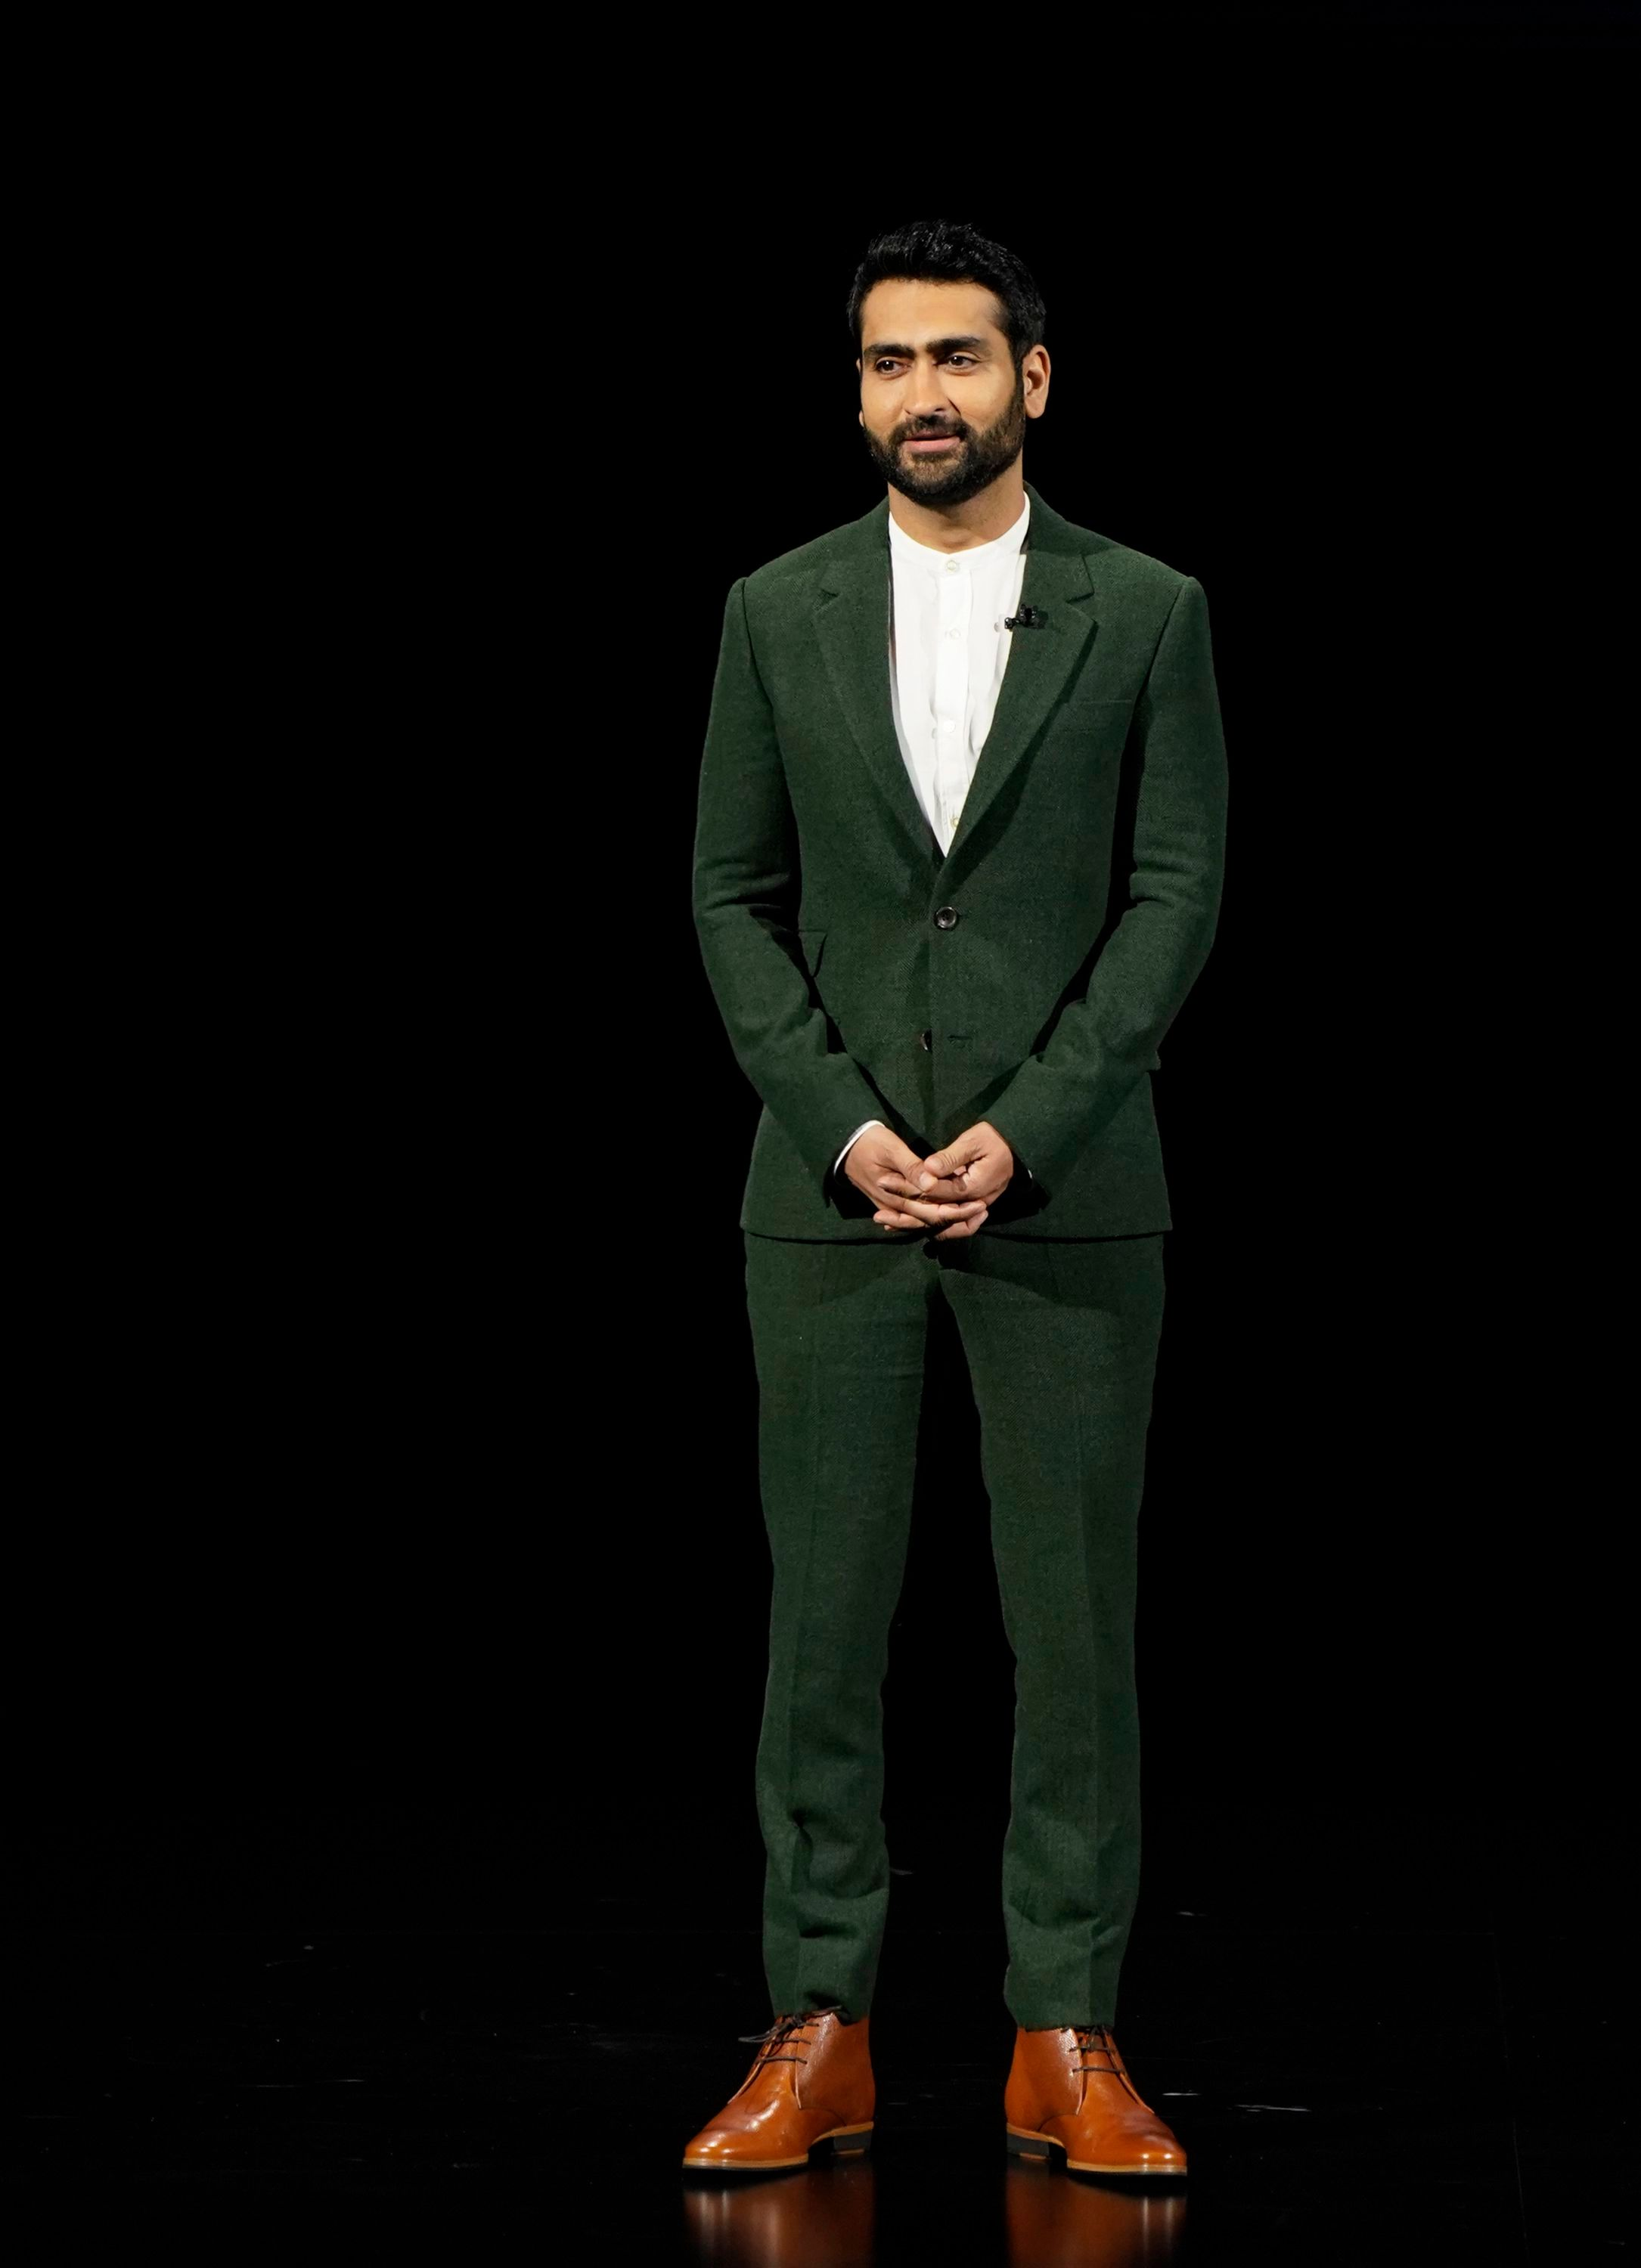 Kumail Nanjiani speaks at the Steve Jobs Theater during an event to announce new products, in Cupertino, CalifApple Streaming TV, Cupertino, USA - 25 Mar 2019